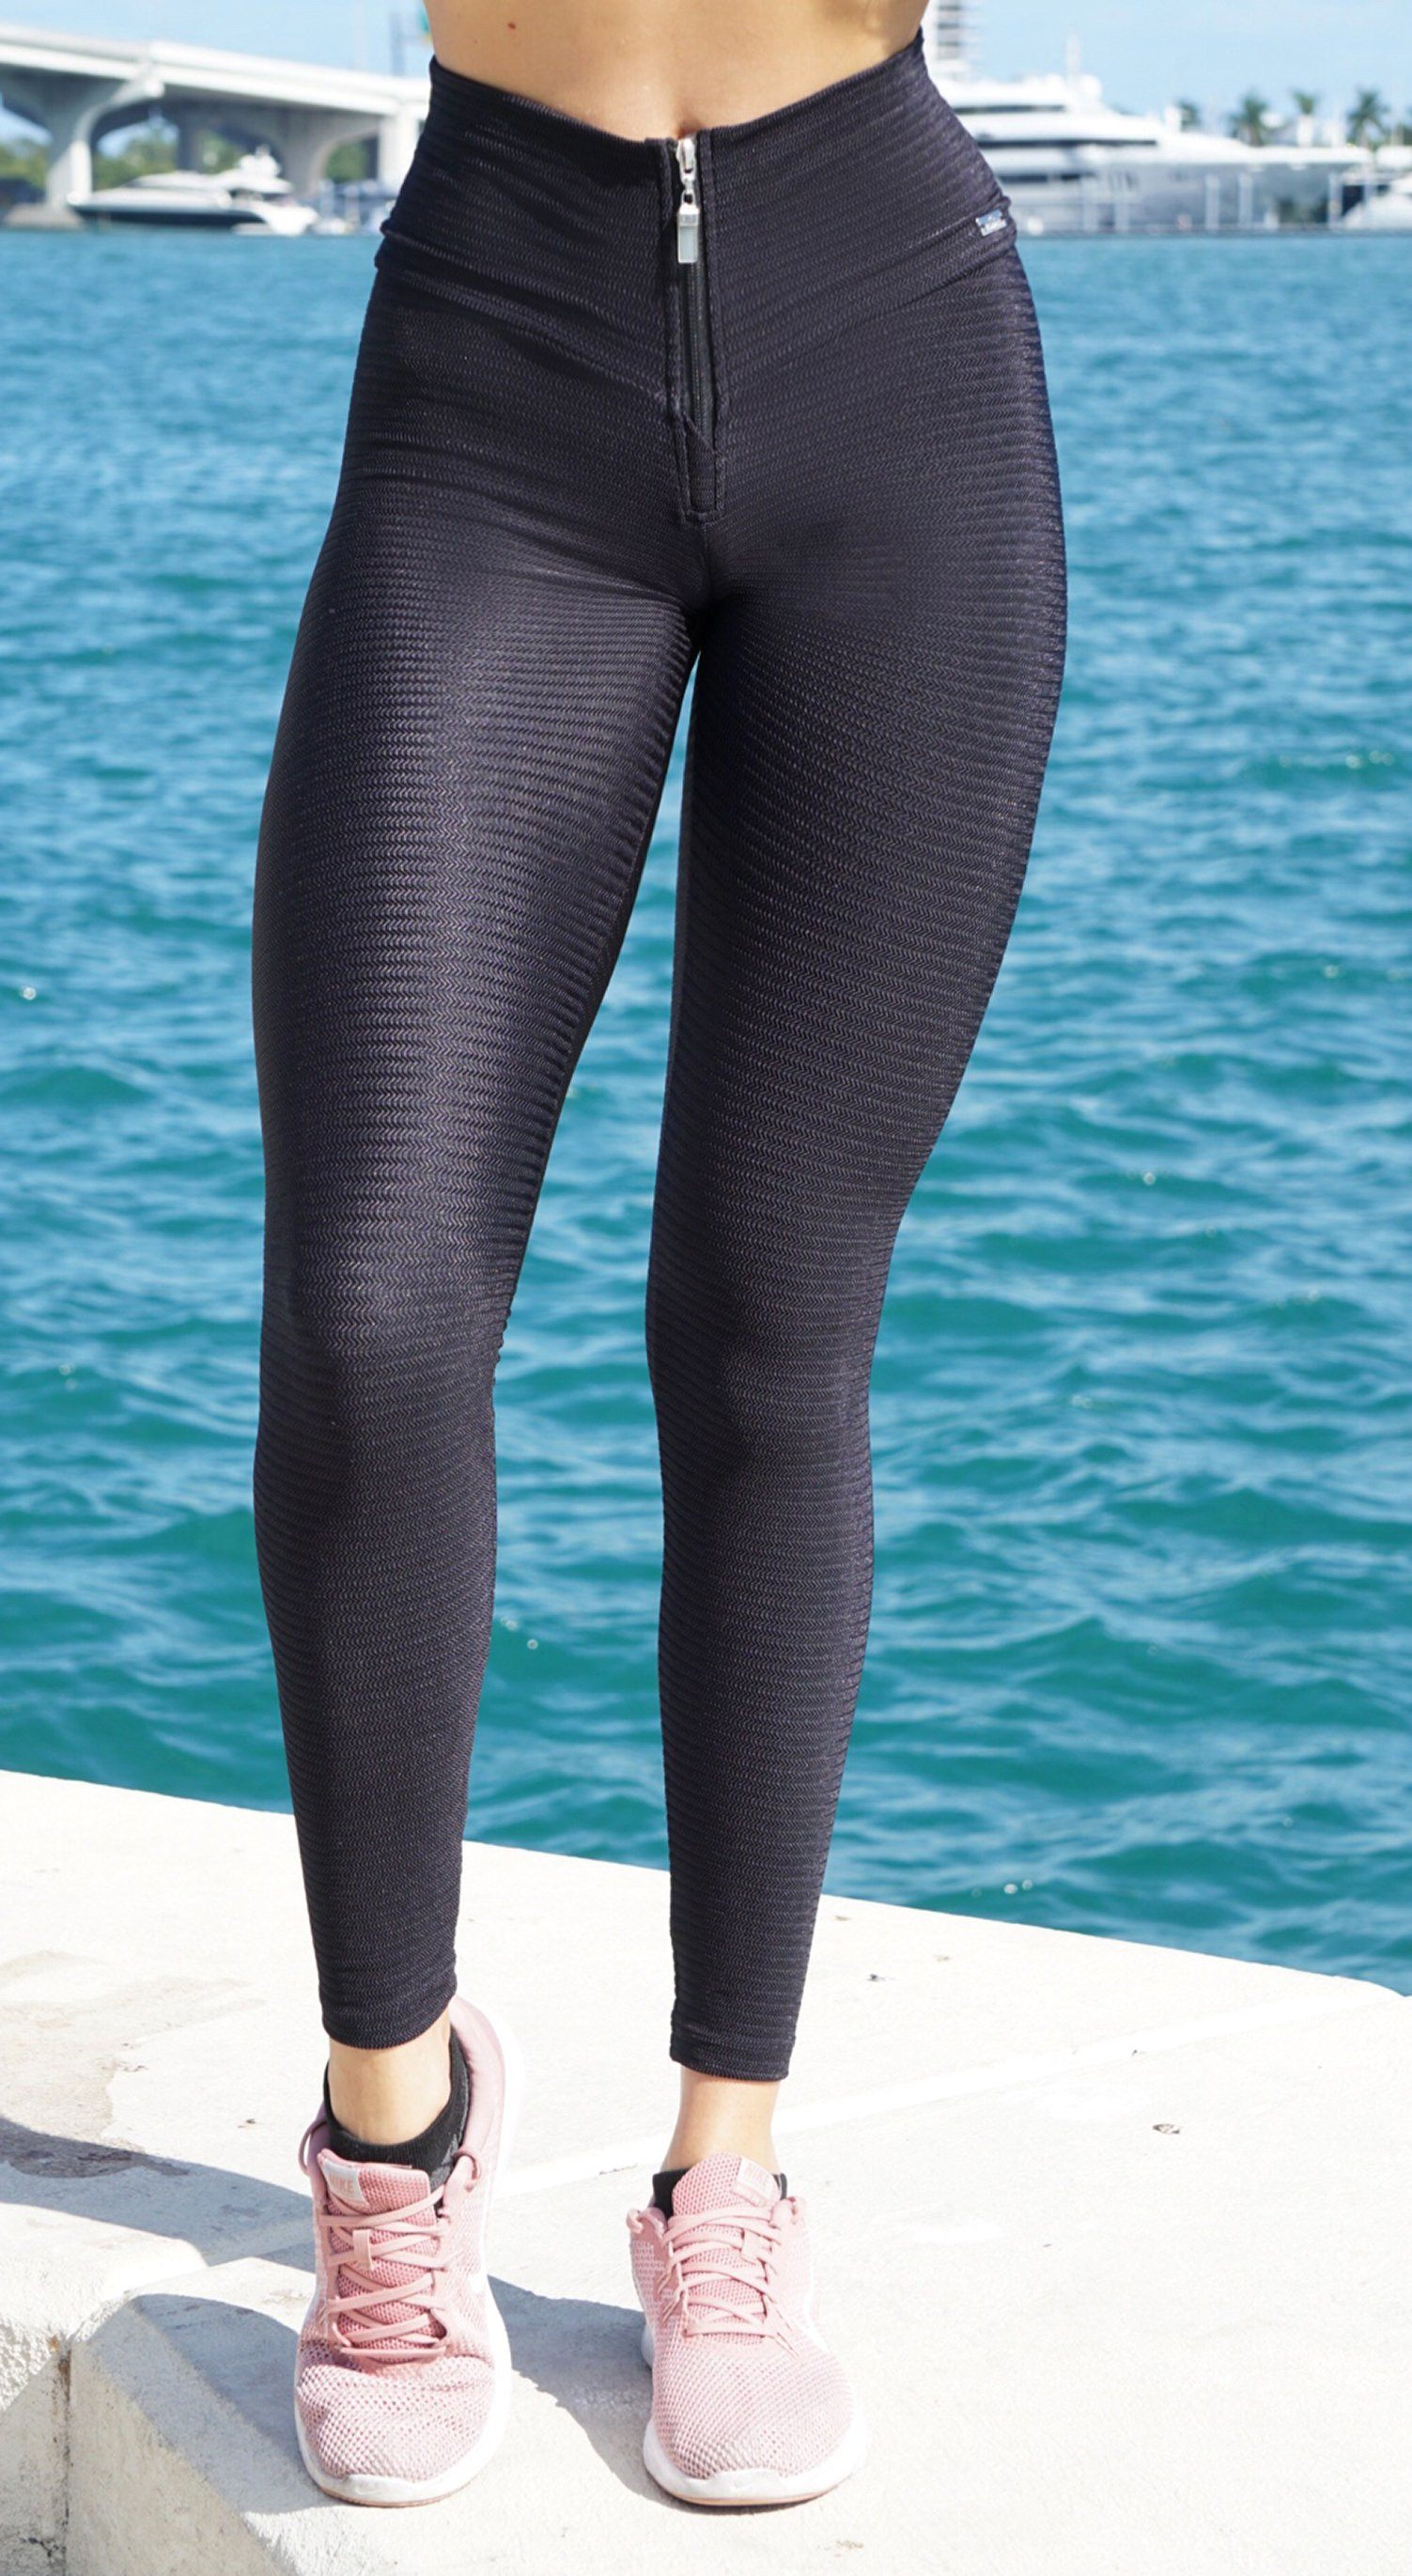 Brazilian Workout Legging - High Waist Delirium Zipper Textured Black